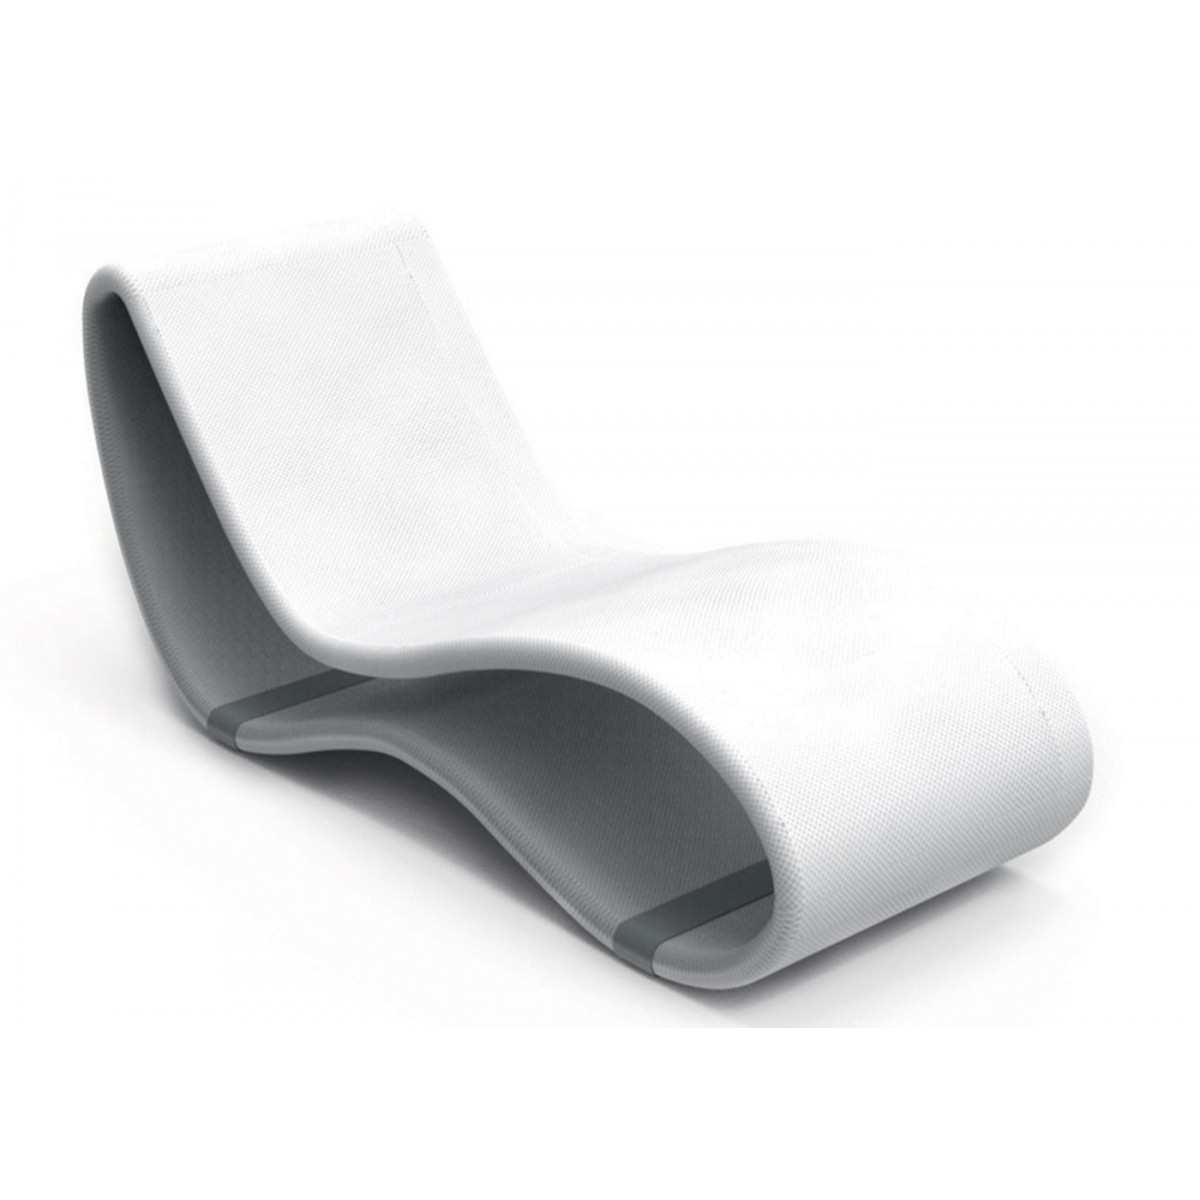 transat design breez 2 0 blanc karim rashid pour talenti. Black Bedroom Furniture Sets. Home Design Ideas